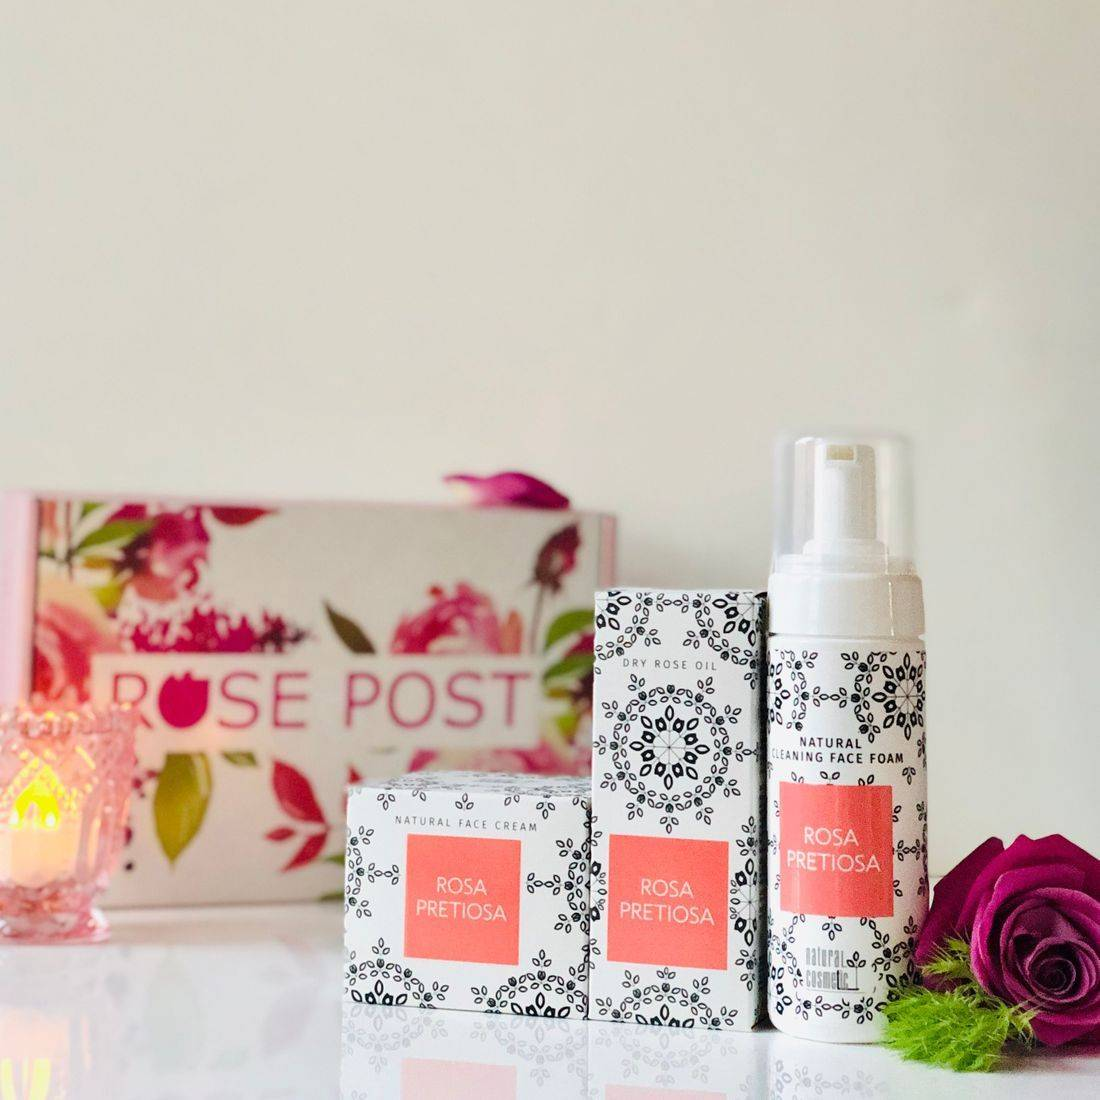 Rose Gift Box, Rosa Pretiosa, Holiday Gift Box,RosePost Spring Box, RosePost Box, Green Beauty Subscription, Rose Beauty Box, Green Beauty Box, Rose Skincare, Clean Rose Beauty